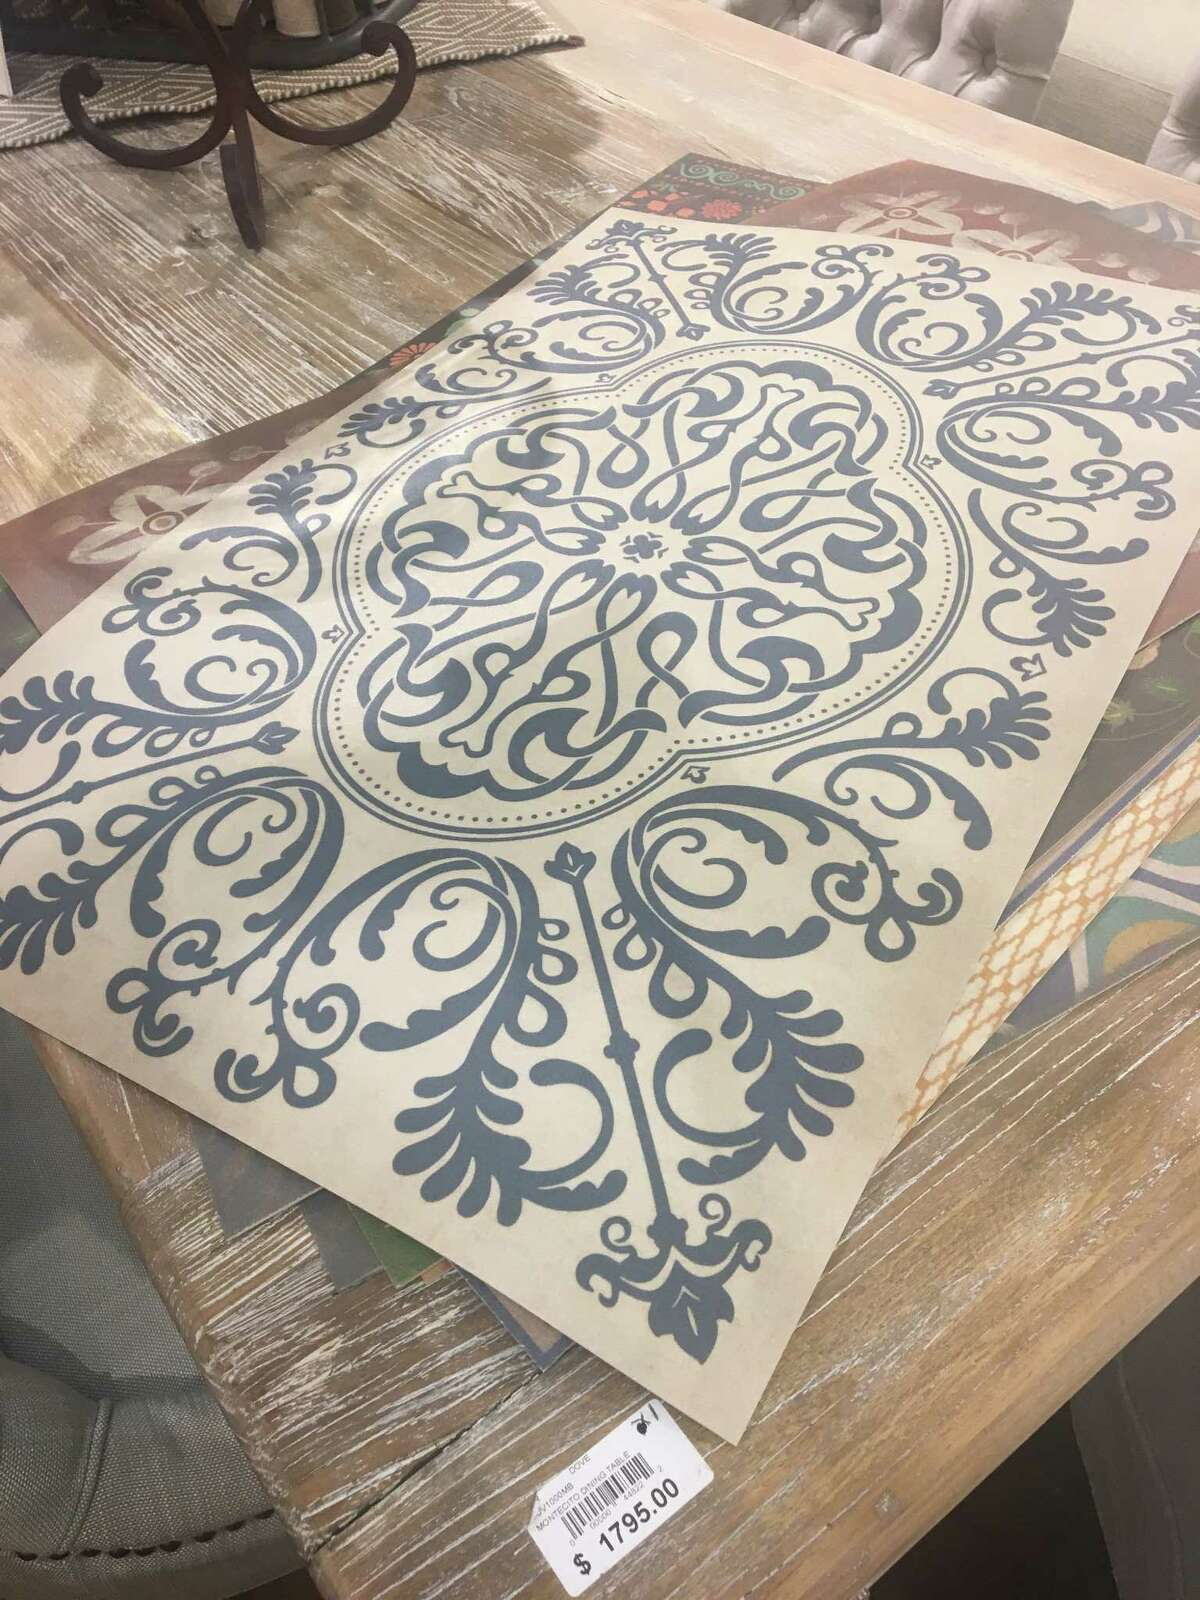 Vinyl floor mats ($38) at LaurieÂ?'s Home Furnishings, 10730 F.M. 2920, Tomball